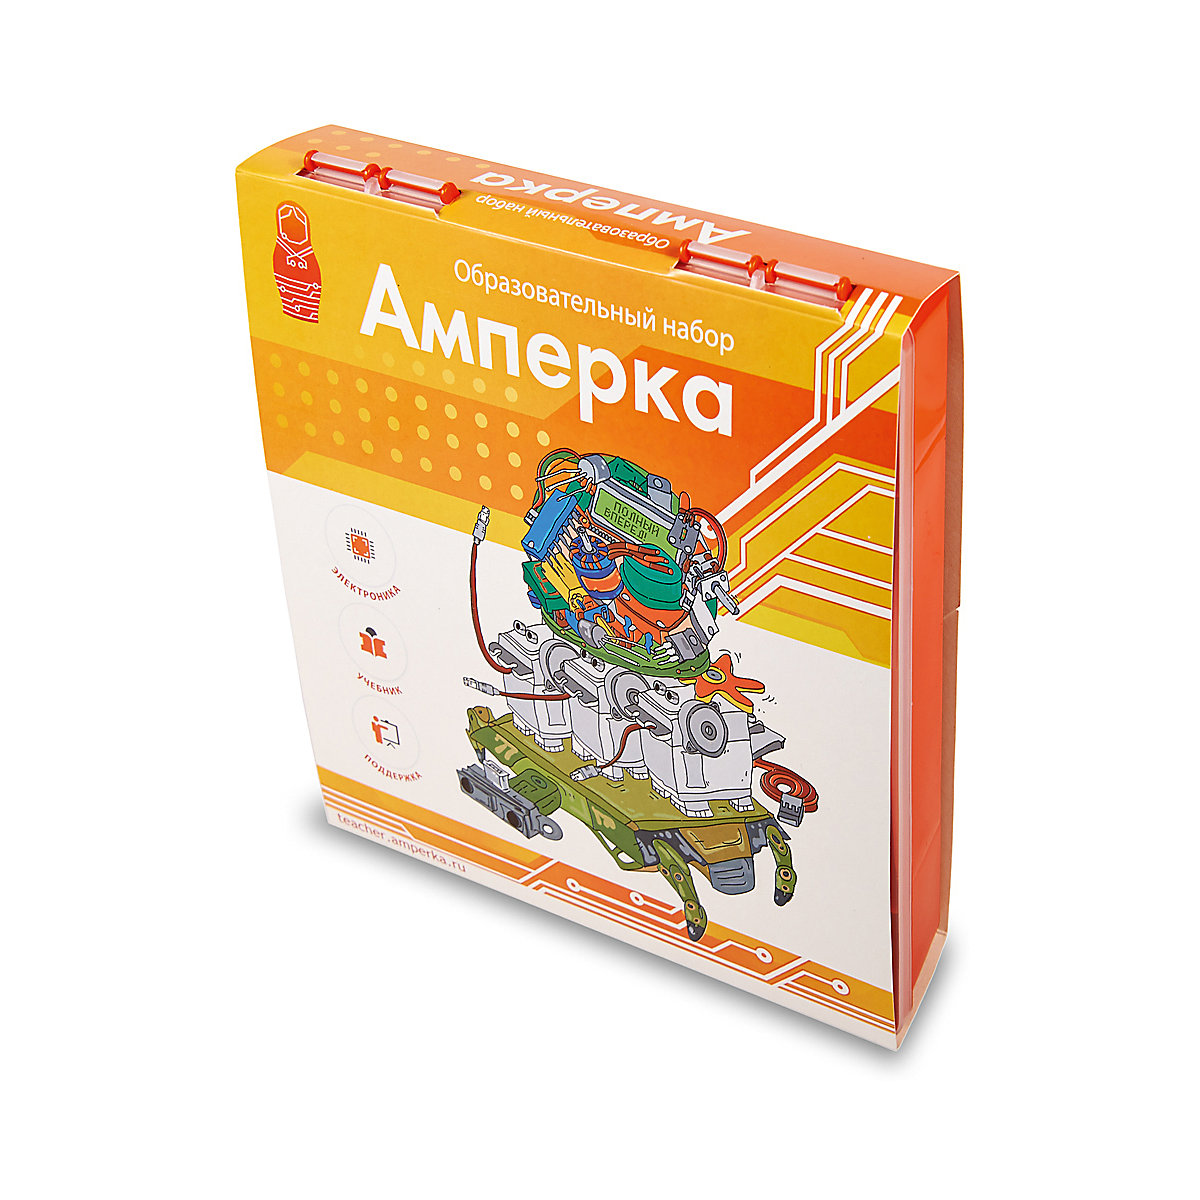 AMPERKA Blocks 5427690 toys for boys girls building construction educational developing toy game play team modeling boy girl lepin 25002 girl friends elsa s magical ice castle 3d building blocks bricks children educational toy compatible with legoinglys